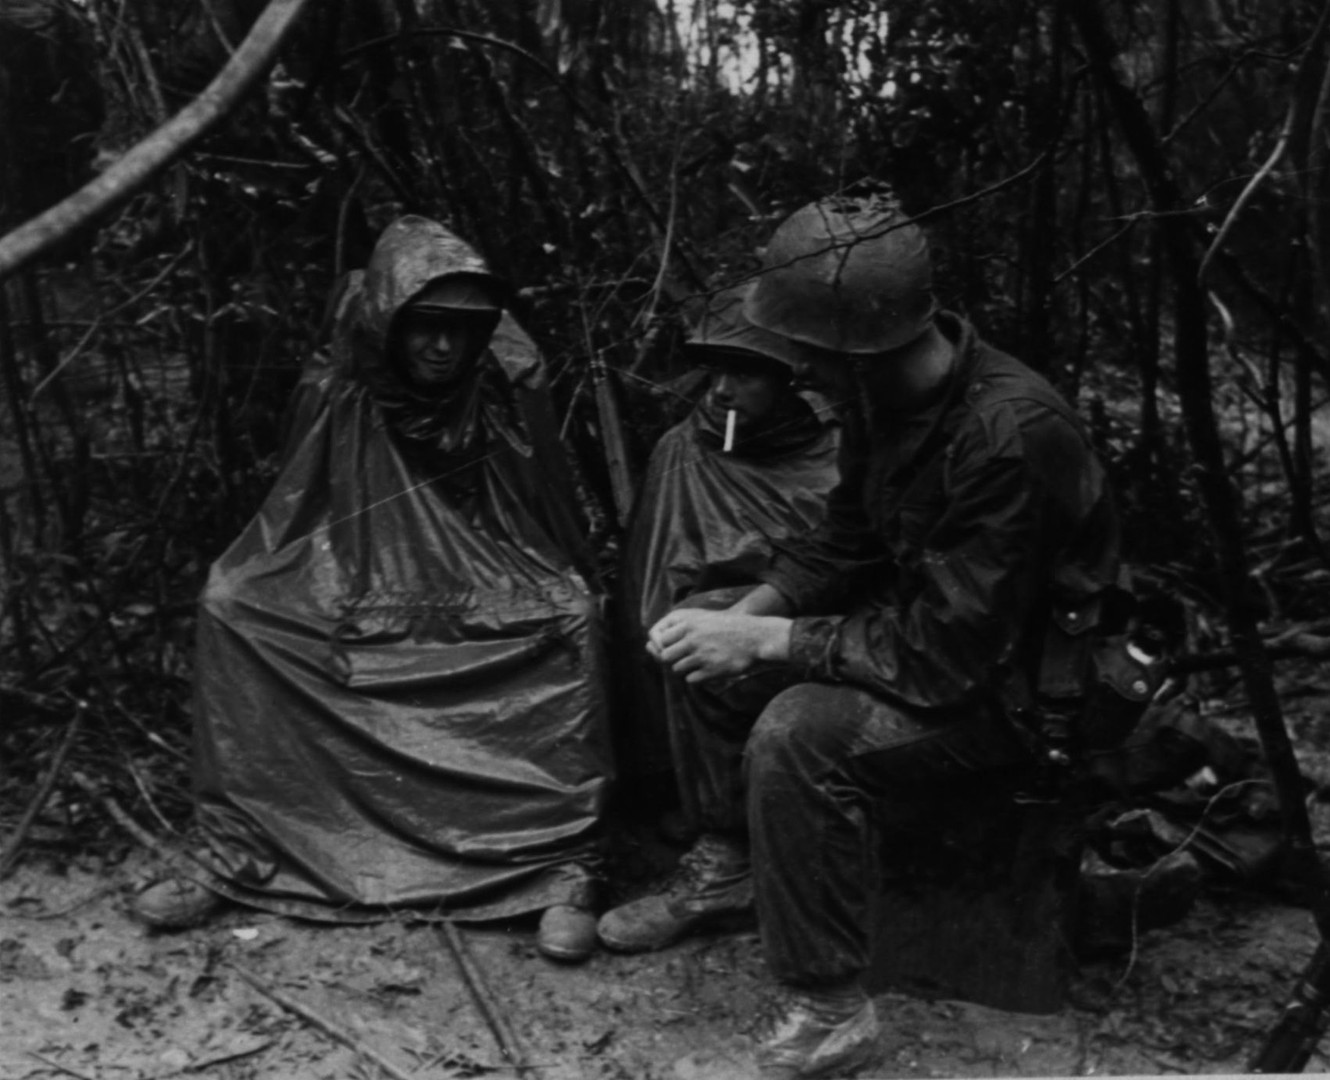 27NOV66. Men of M Company, 3rd Battalion, 3rd Regiment, have a smoking  break and chat while on Operation Prairie near the demilitarized zone.  Source: National Archives photo no. 26387391